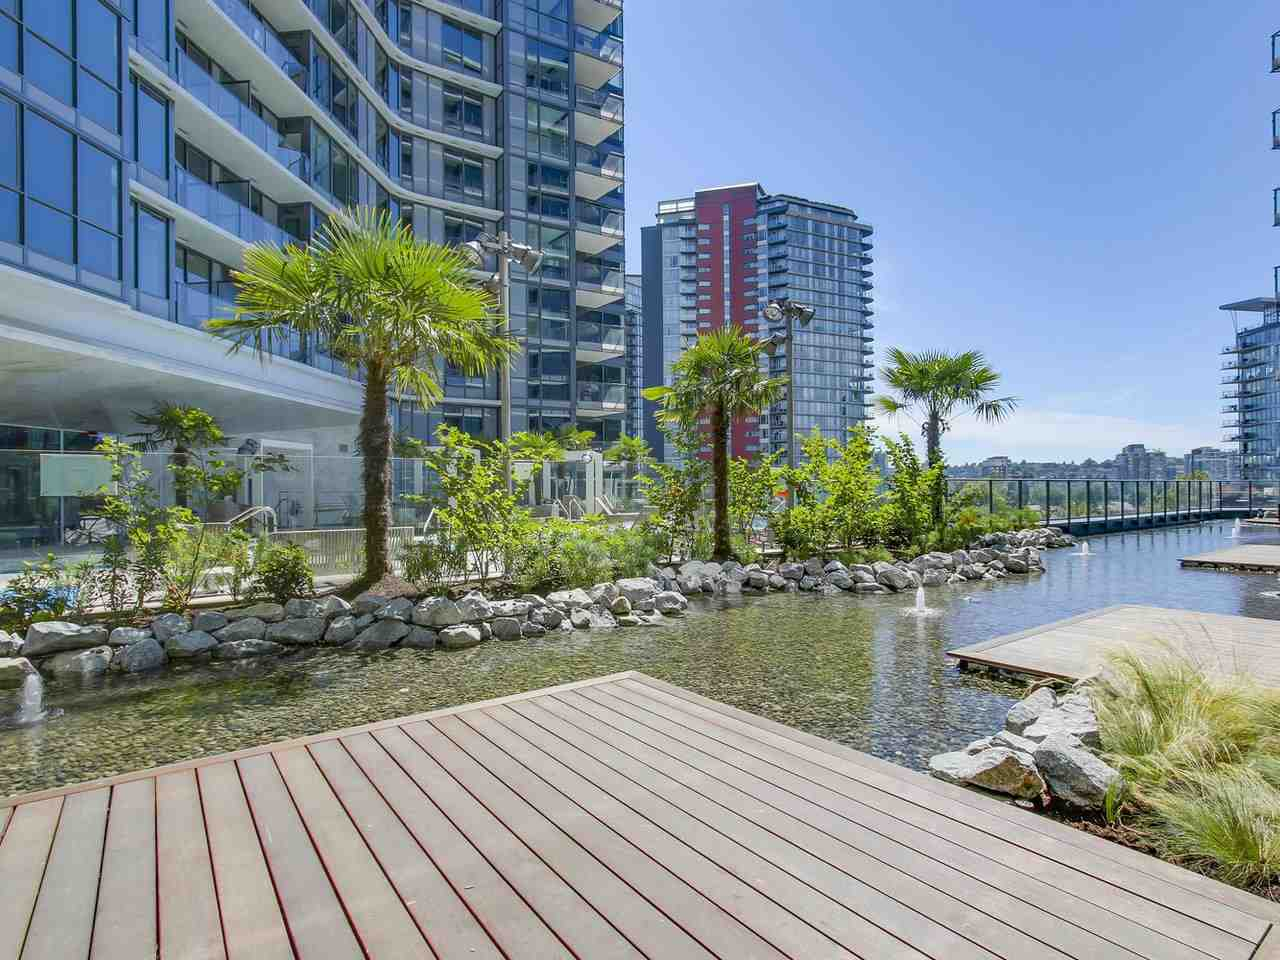 Condo Apartment at 303 68 SMITHE STREET, Unit 303, Vancouver West, British Columbia. Image 2